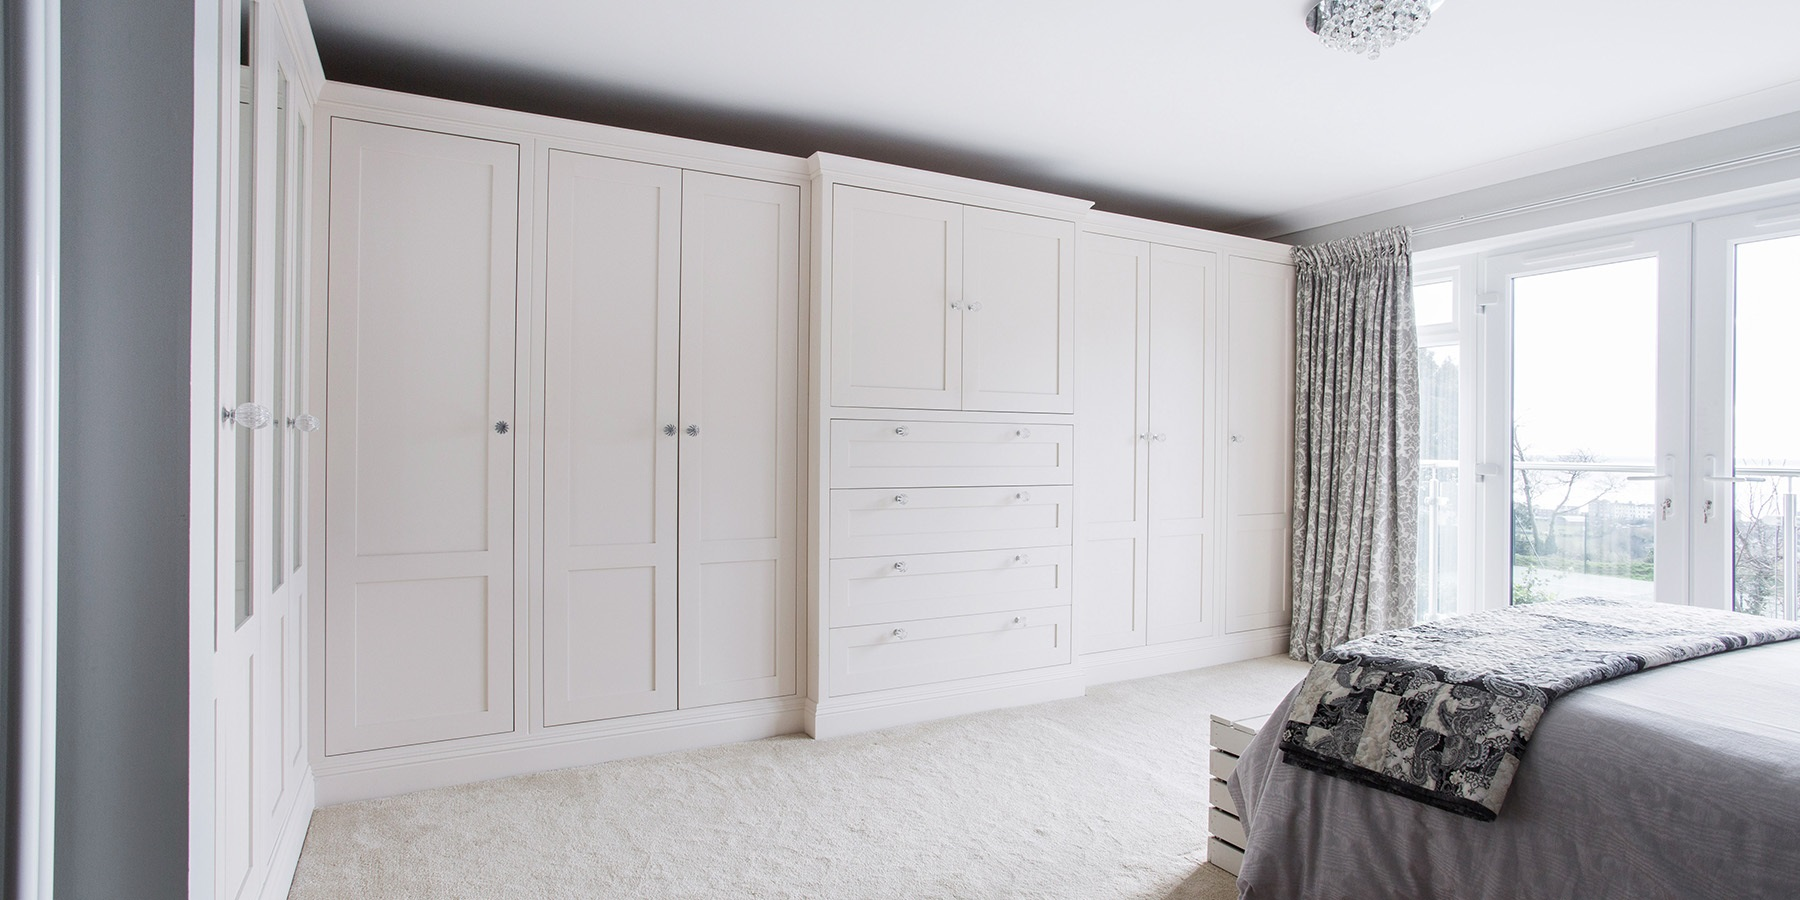 Burlanes Interiors - Bespoke, handmade bedroom furniture and fitted wardrobes and a beautiful master bedroom en suite